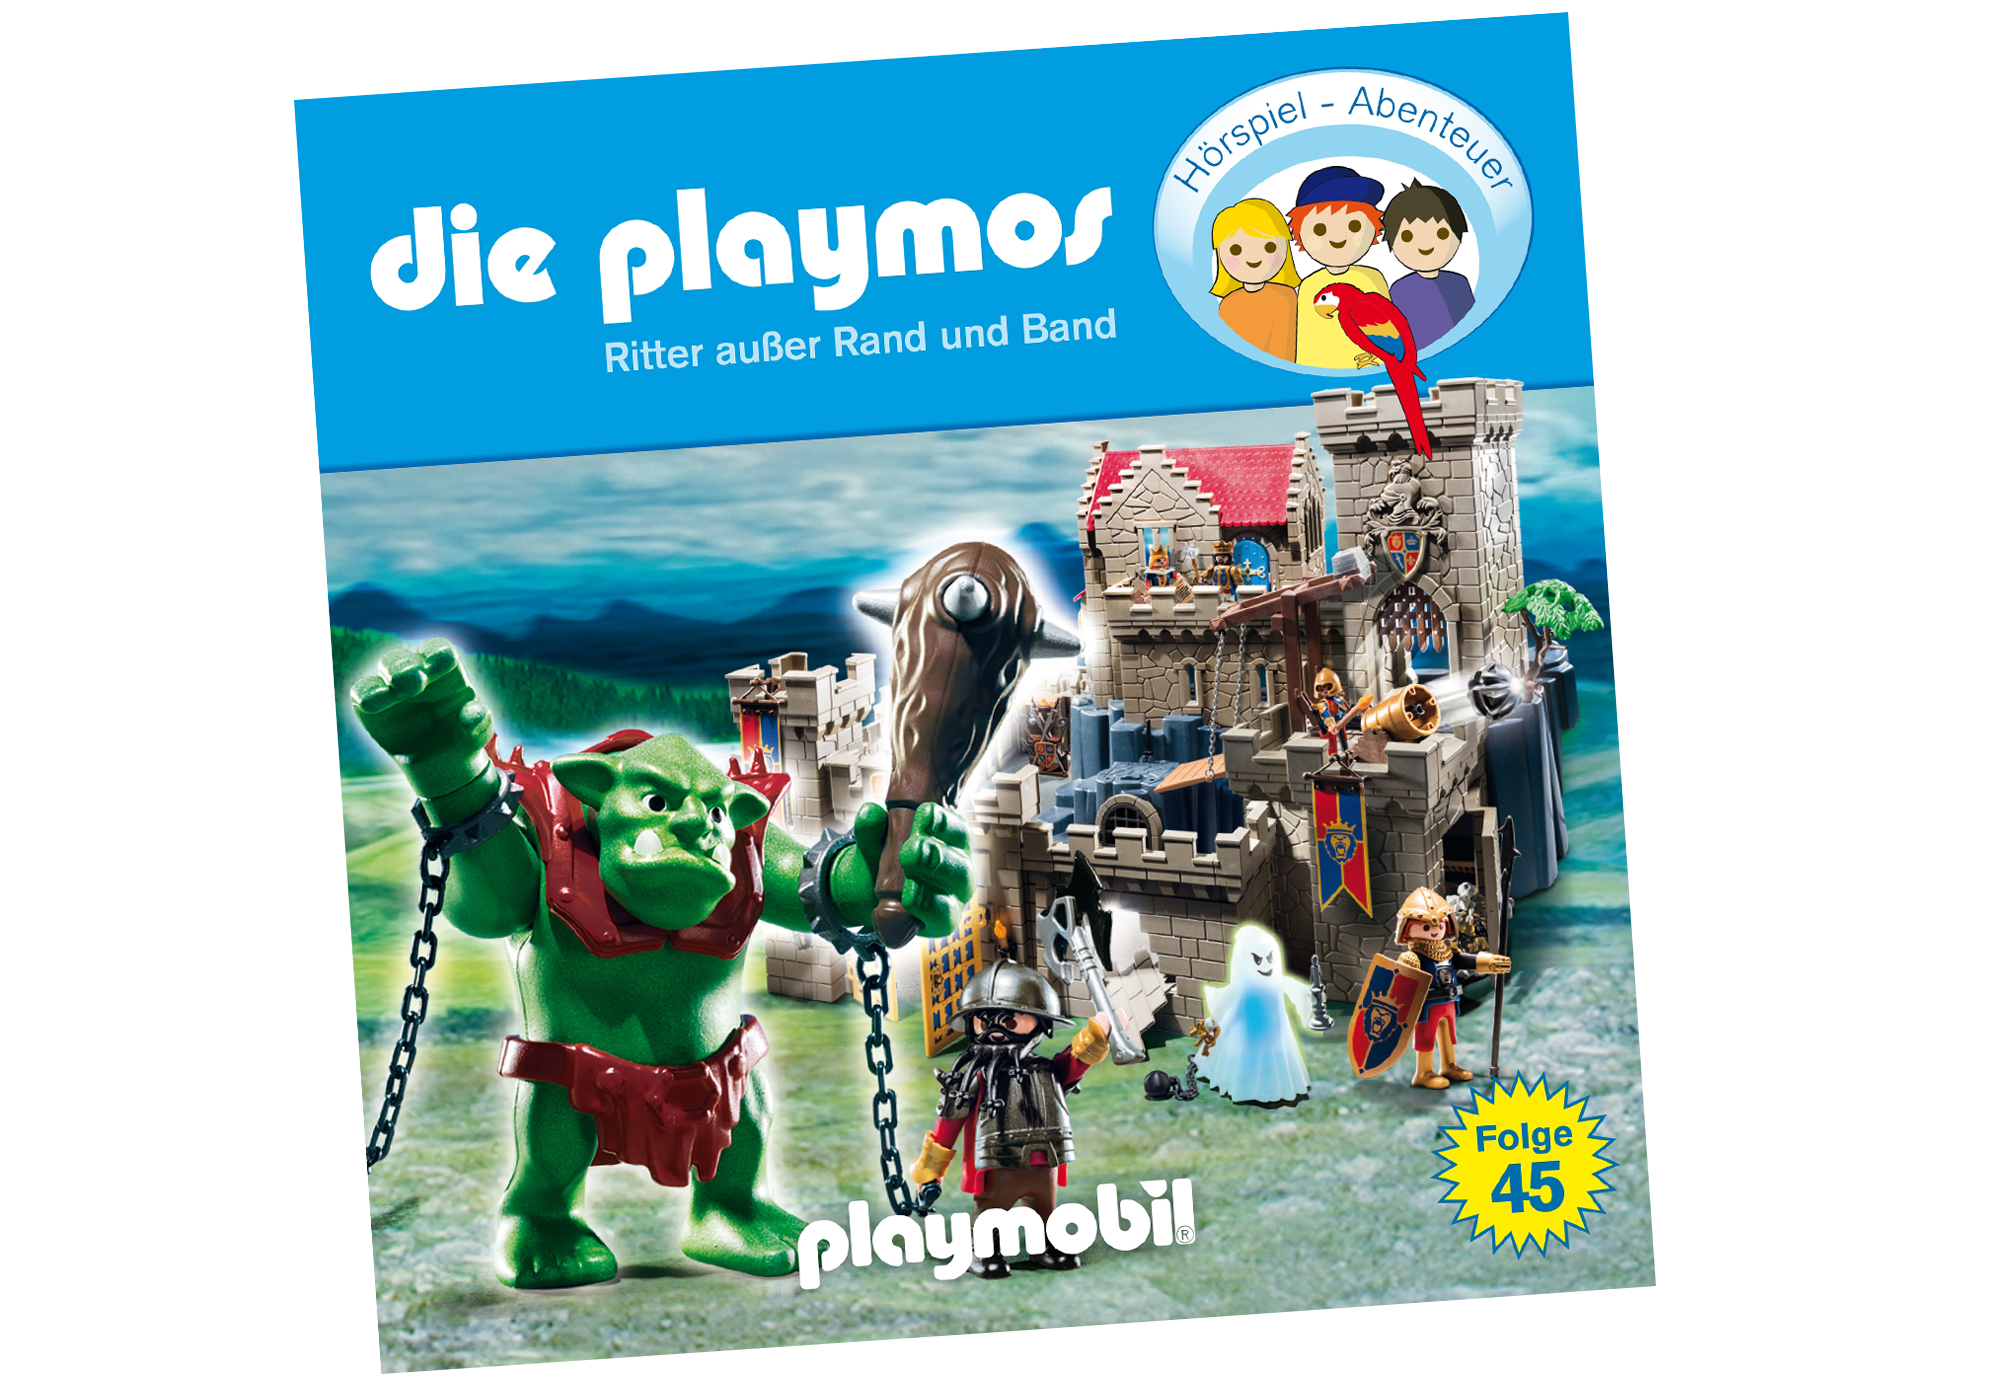 http://media.playmobil.com/i/playmobil/80458_product_detail